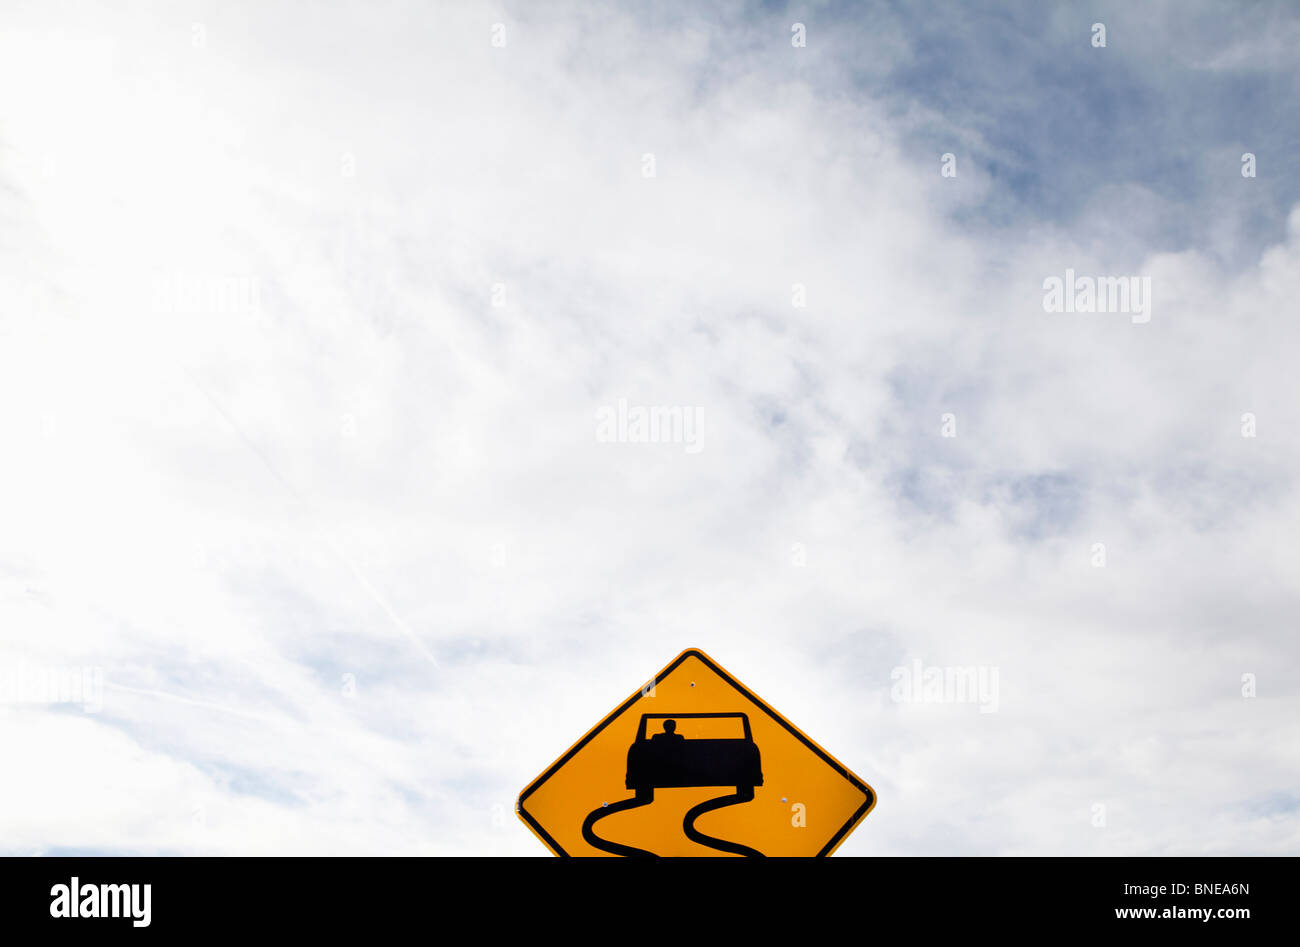 Slippery Road sign against a clouded sky - Stock Image